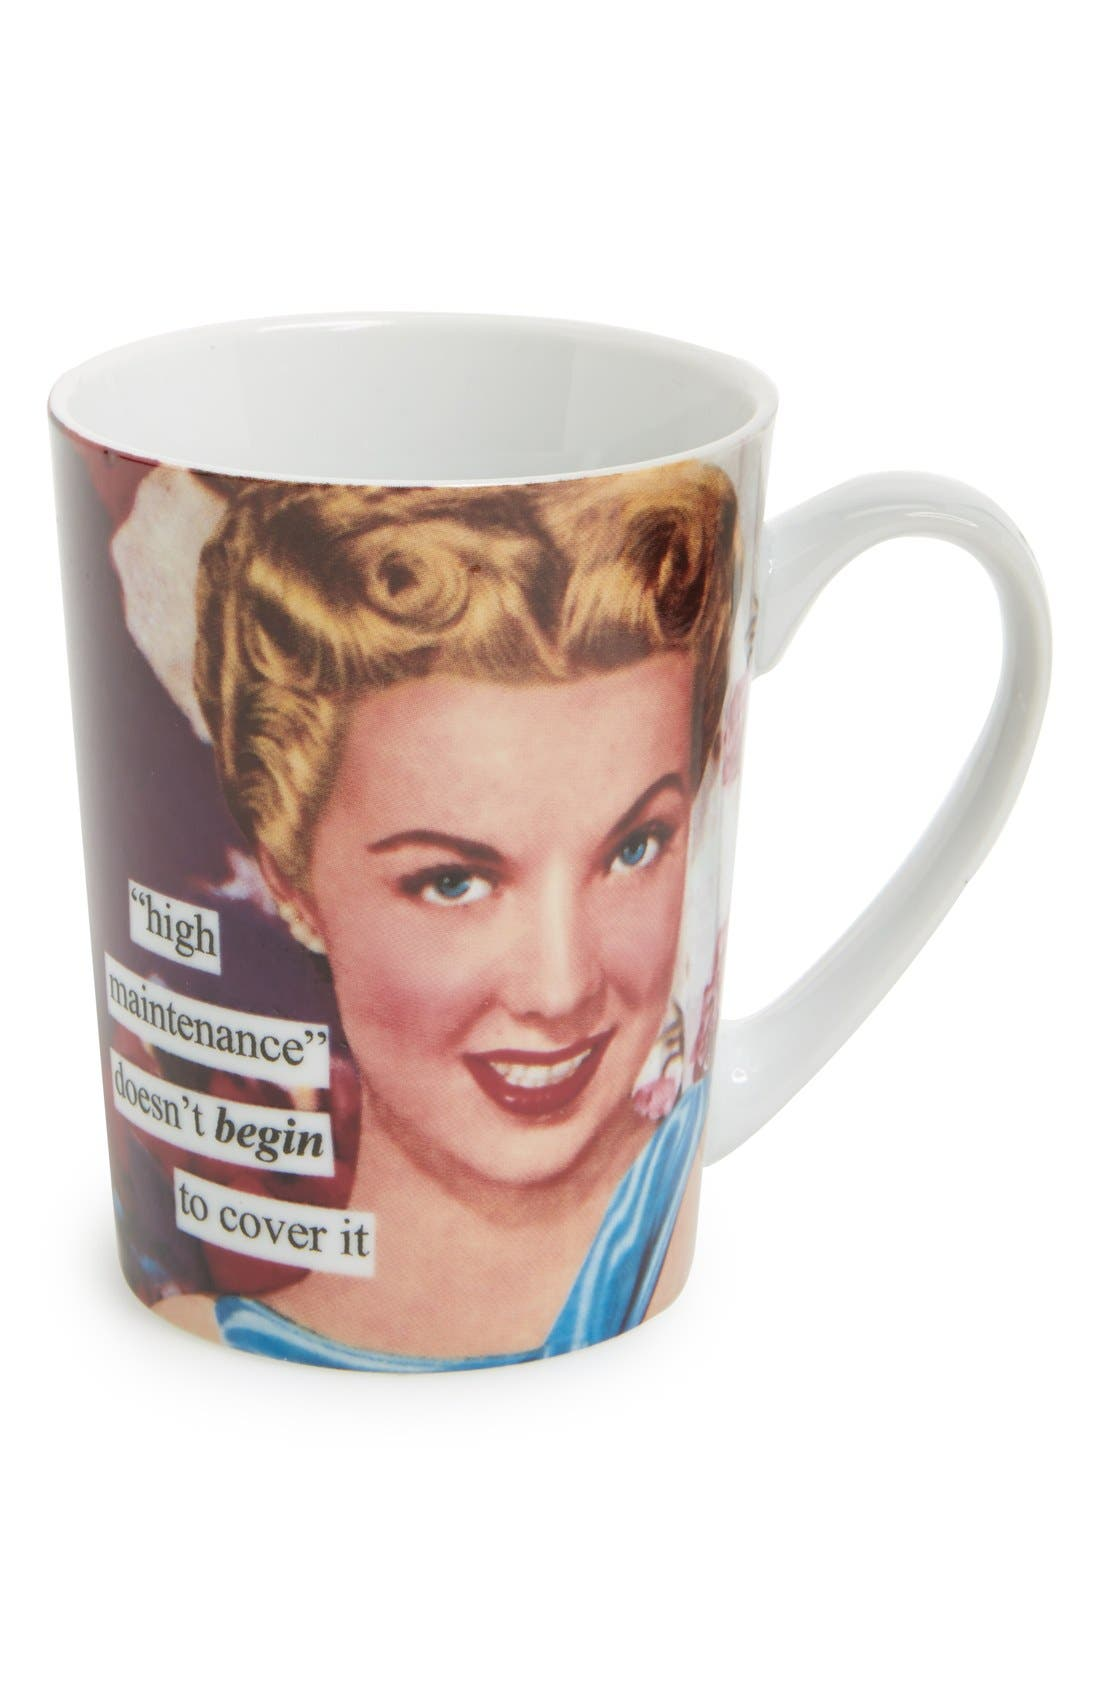 Main Image - Anne Taintor 'High Maintenance Doesn't BEGIN to Cover It' Mug